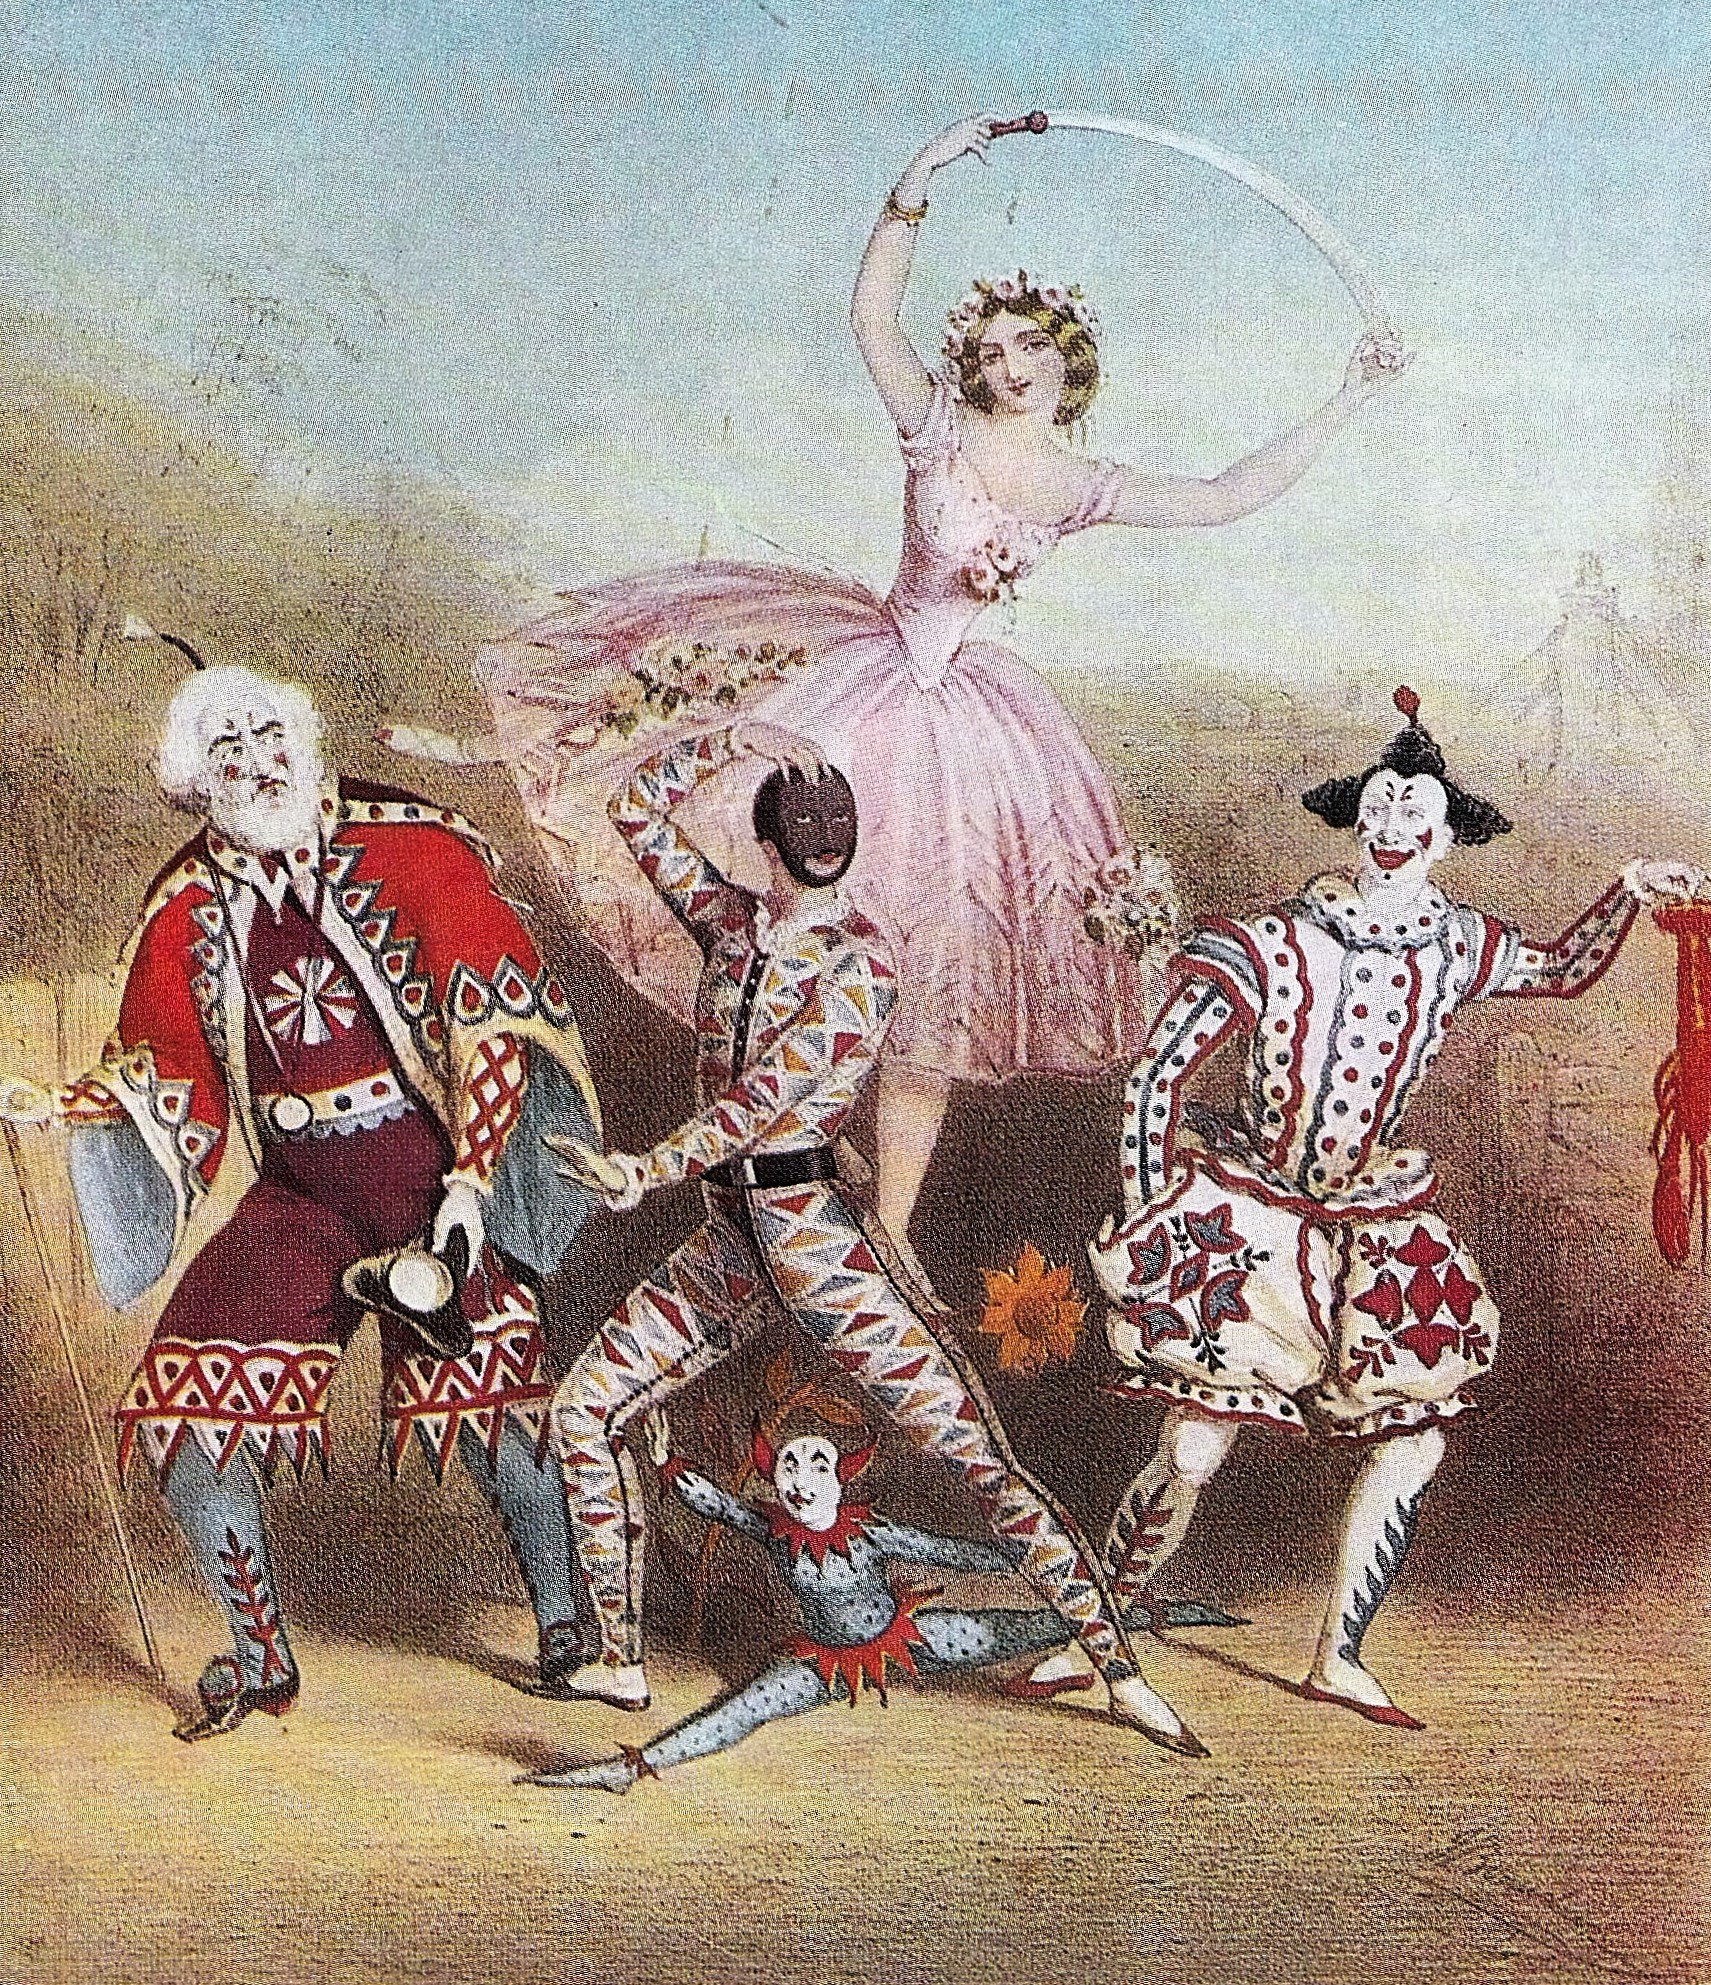 Image 10 – A Harlequinade scene from 'King of the Castle' or 'Harlequin, Prince Diamond and Princess Bright Eyes' attributed John Brandard,c. 1858.adj.